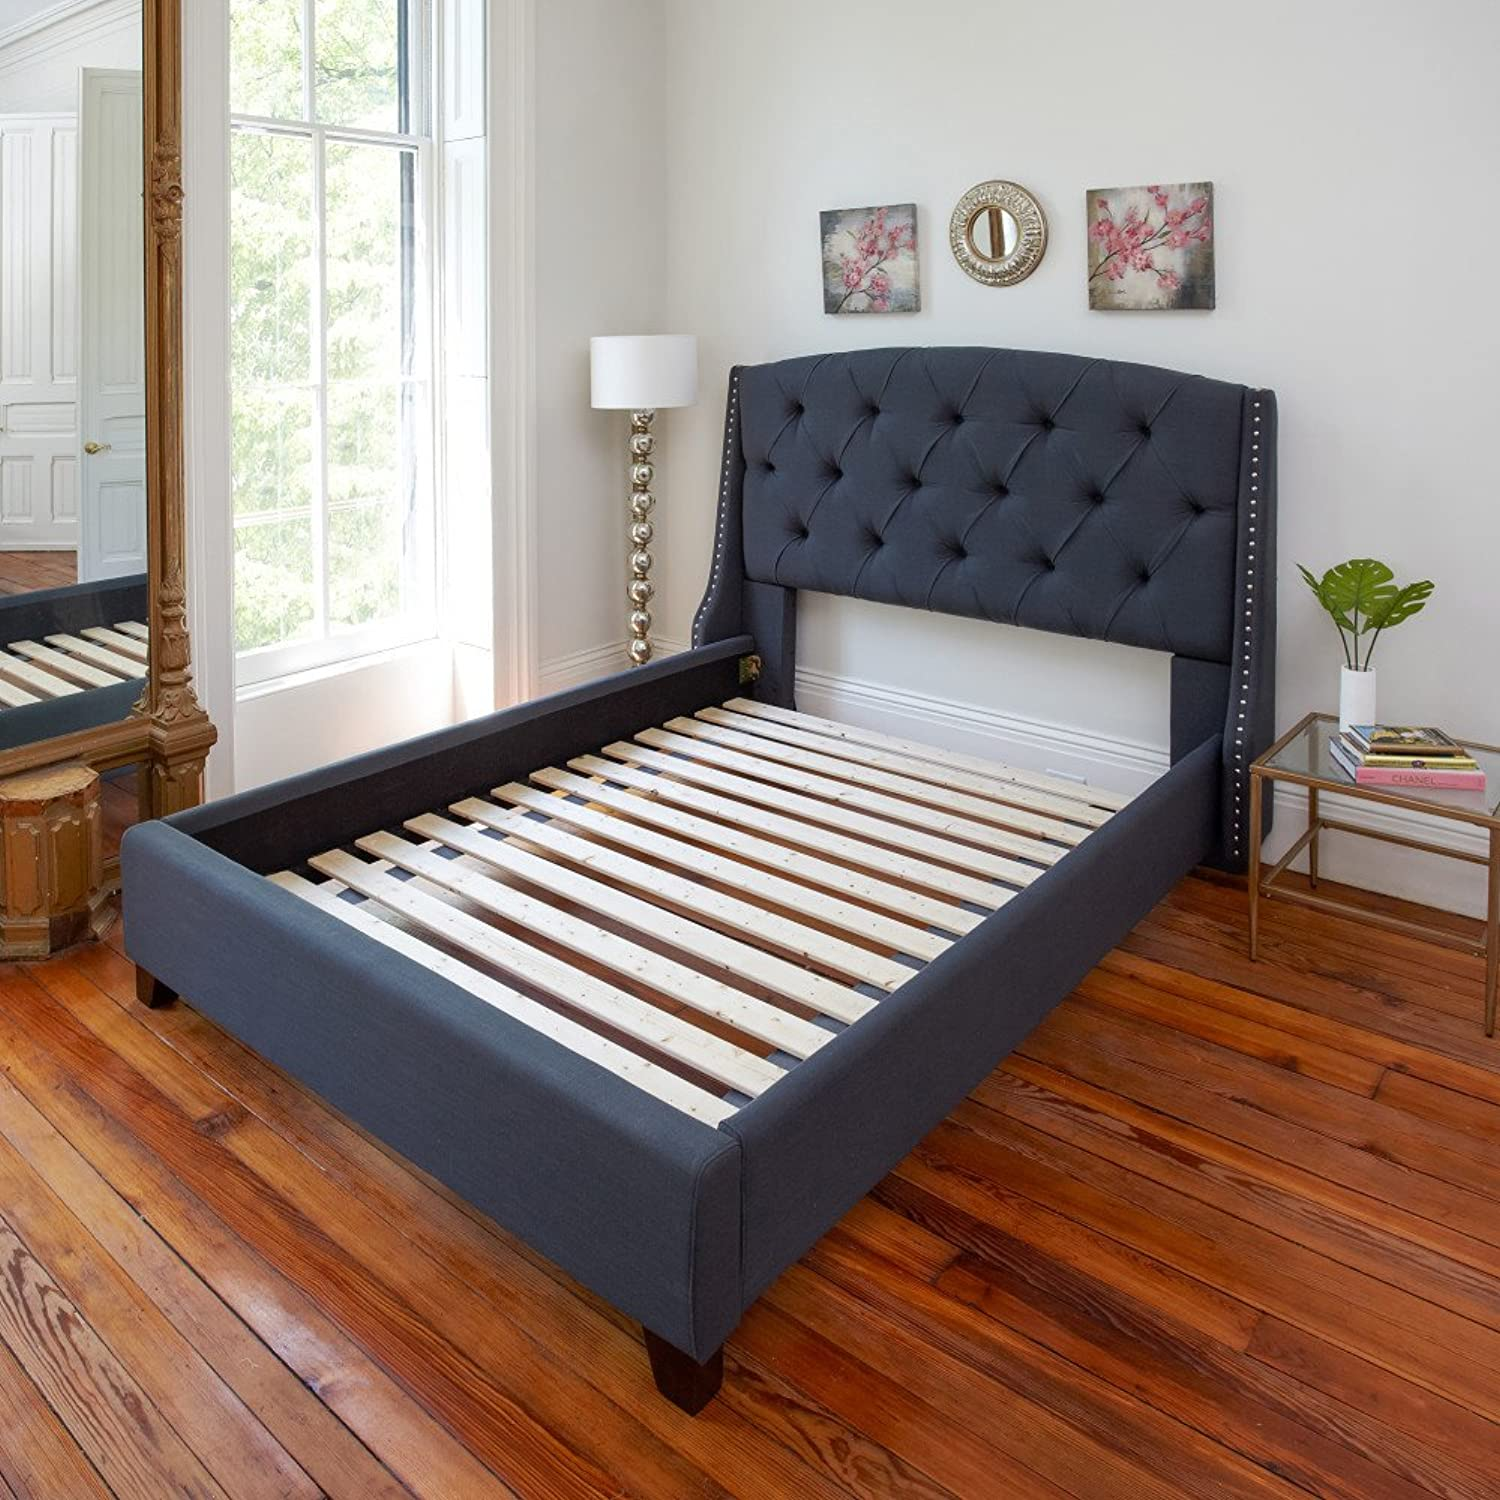 Classic Brands Heavy-Duty Solid Wood Bed Support Slats   Bunkie Board, Twin